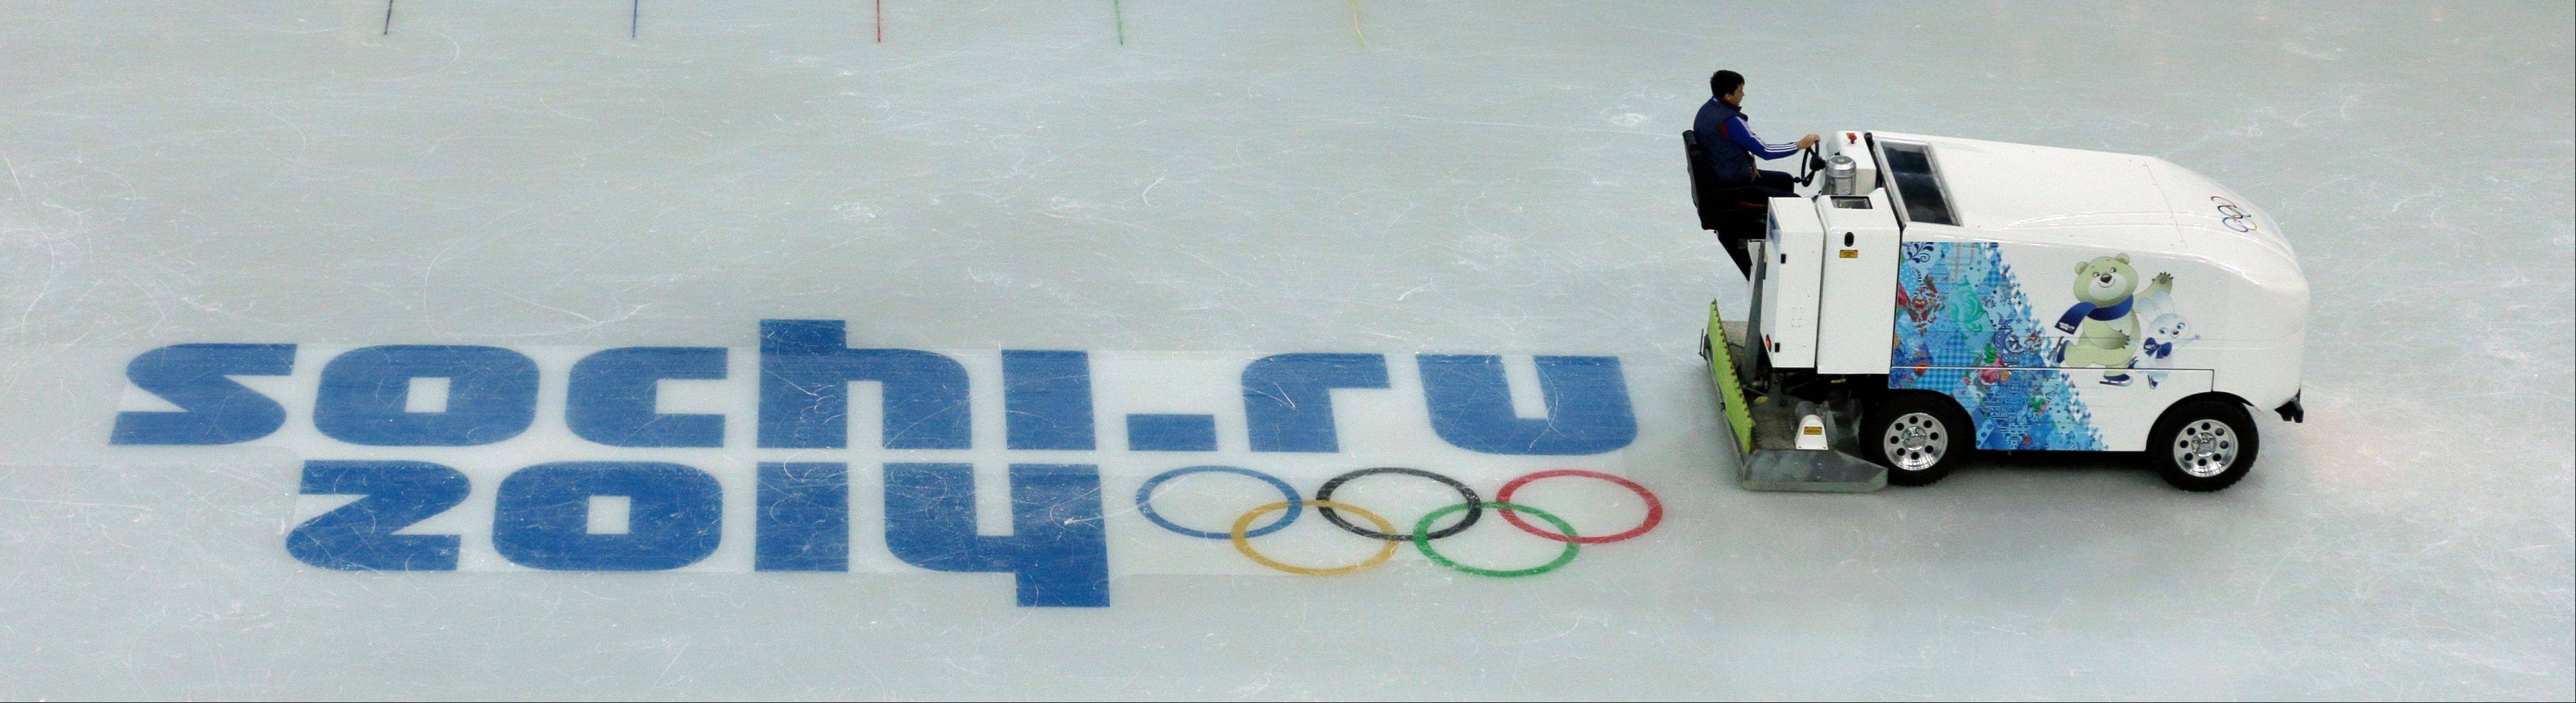 A zamboni crosses the ice at Iceberg Skating Palace at the 2014 Winter Olympics Saturday in Sochi, Russia. The Olympics begin Feb. 7.